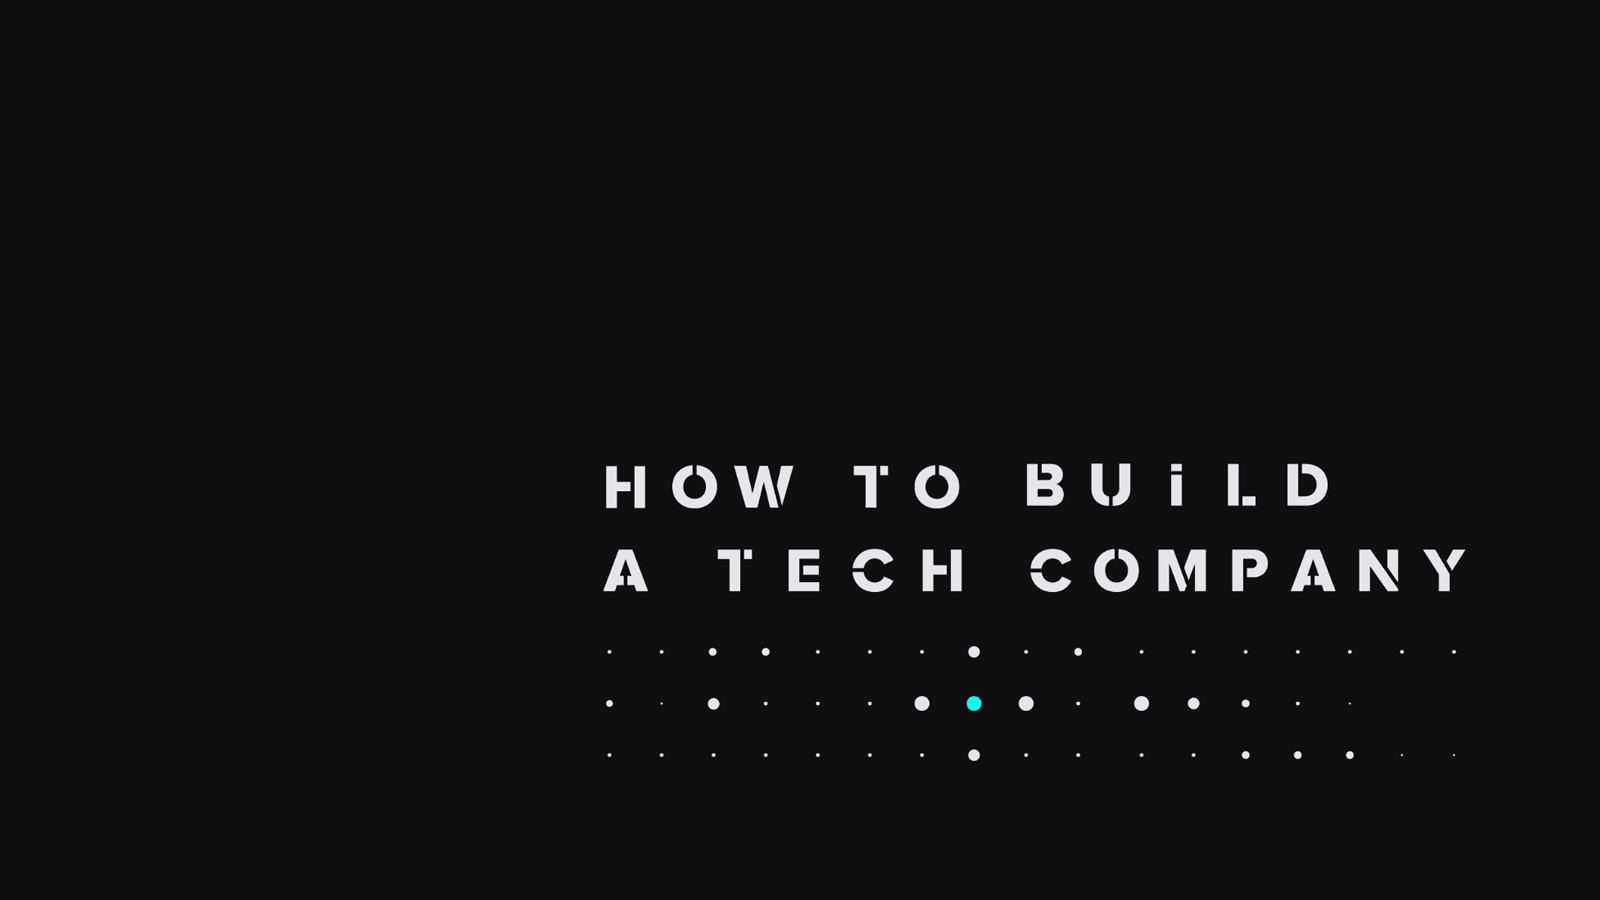 How to Build a Tech Company